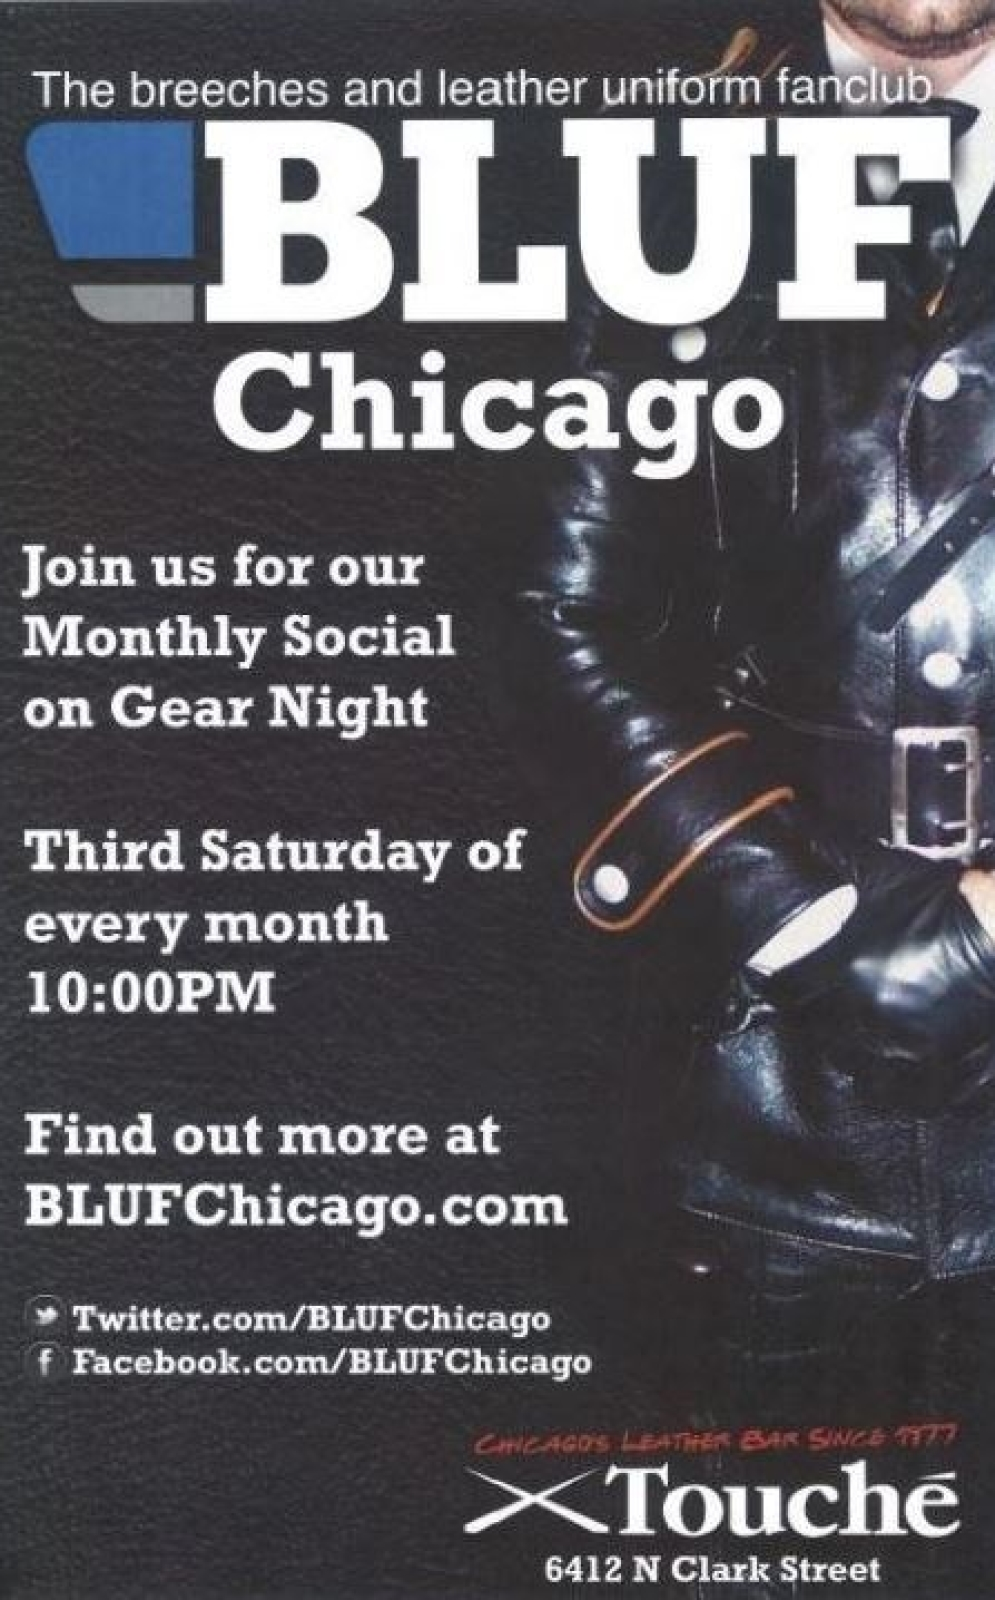 BLUFChicag General events 21013- C